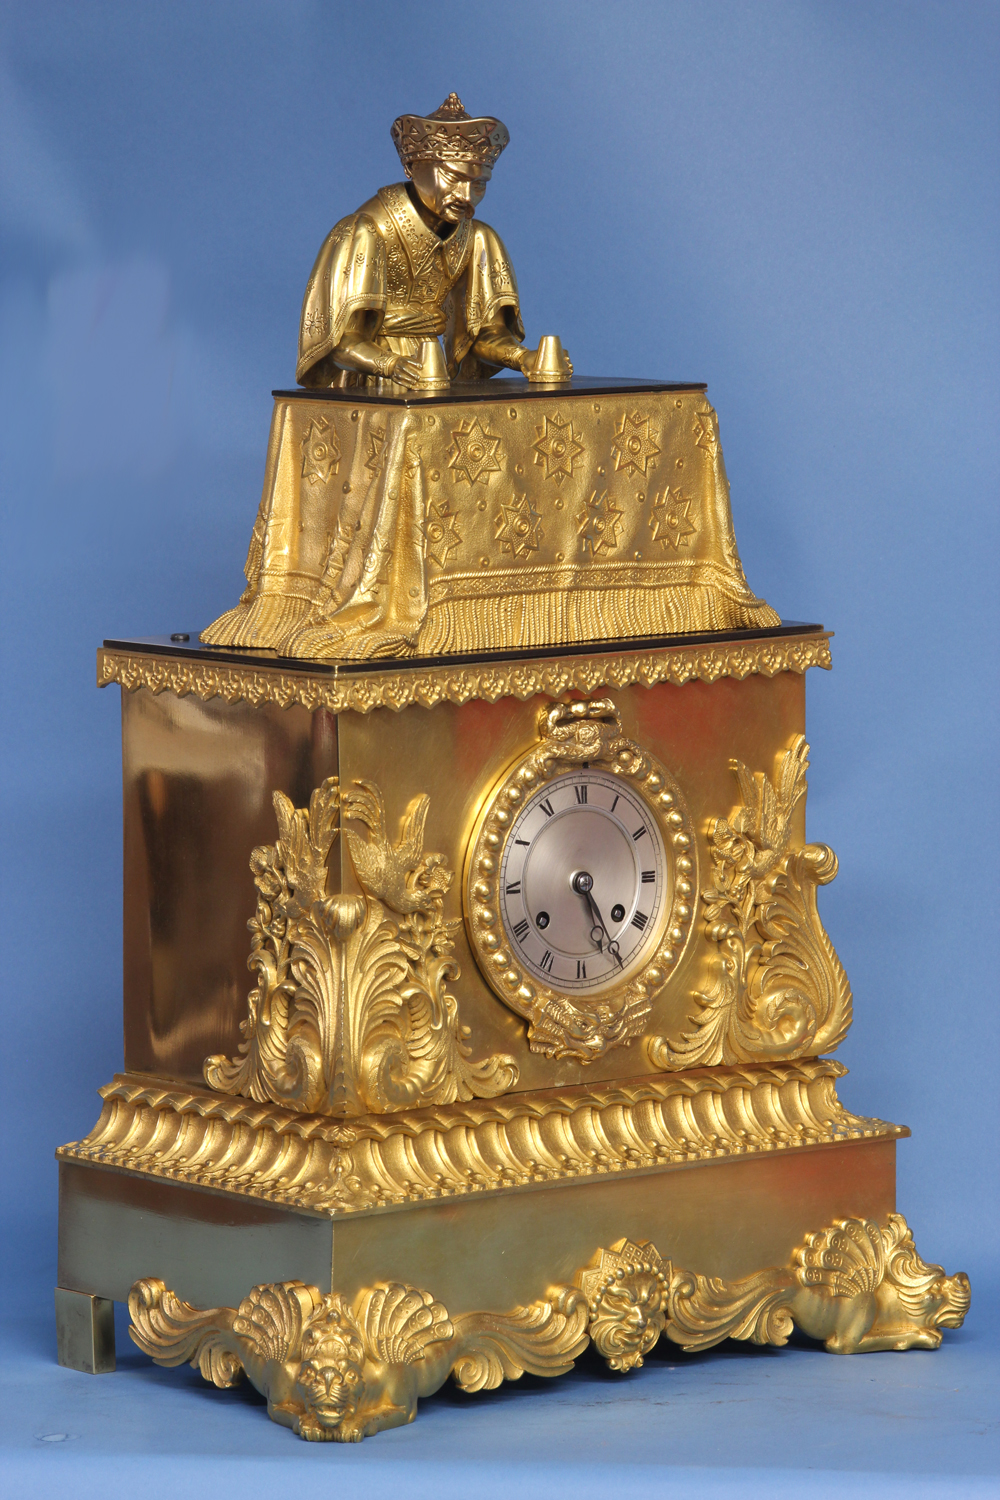 c.1840 French Animated Conjuror Clock by J.F. Houdin